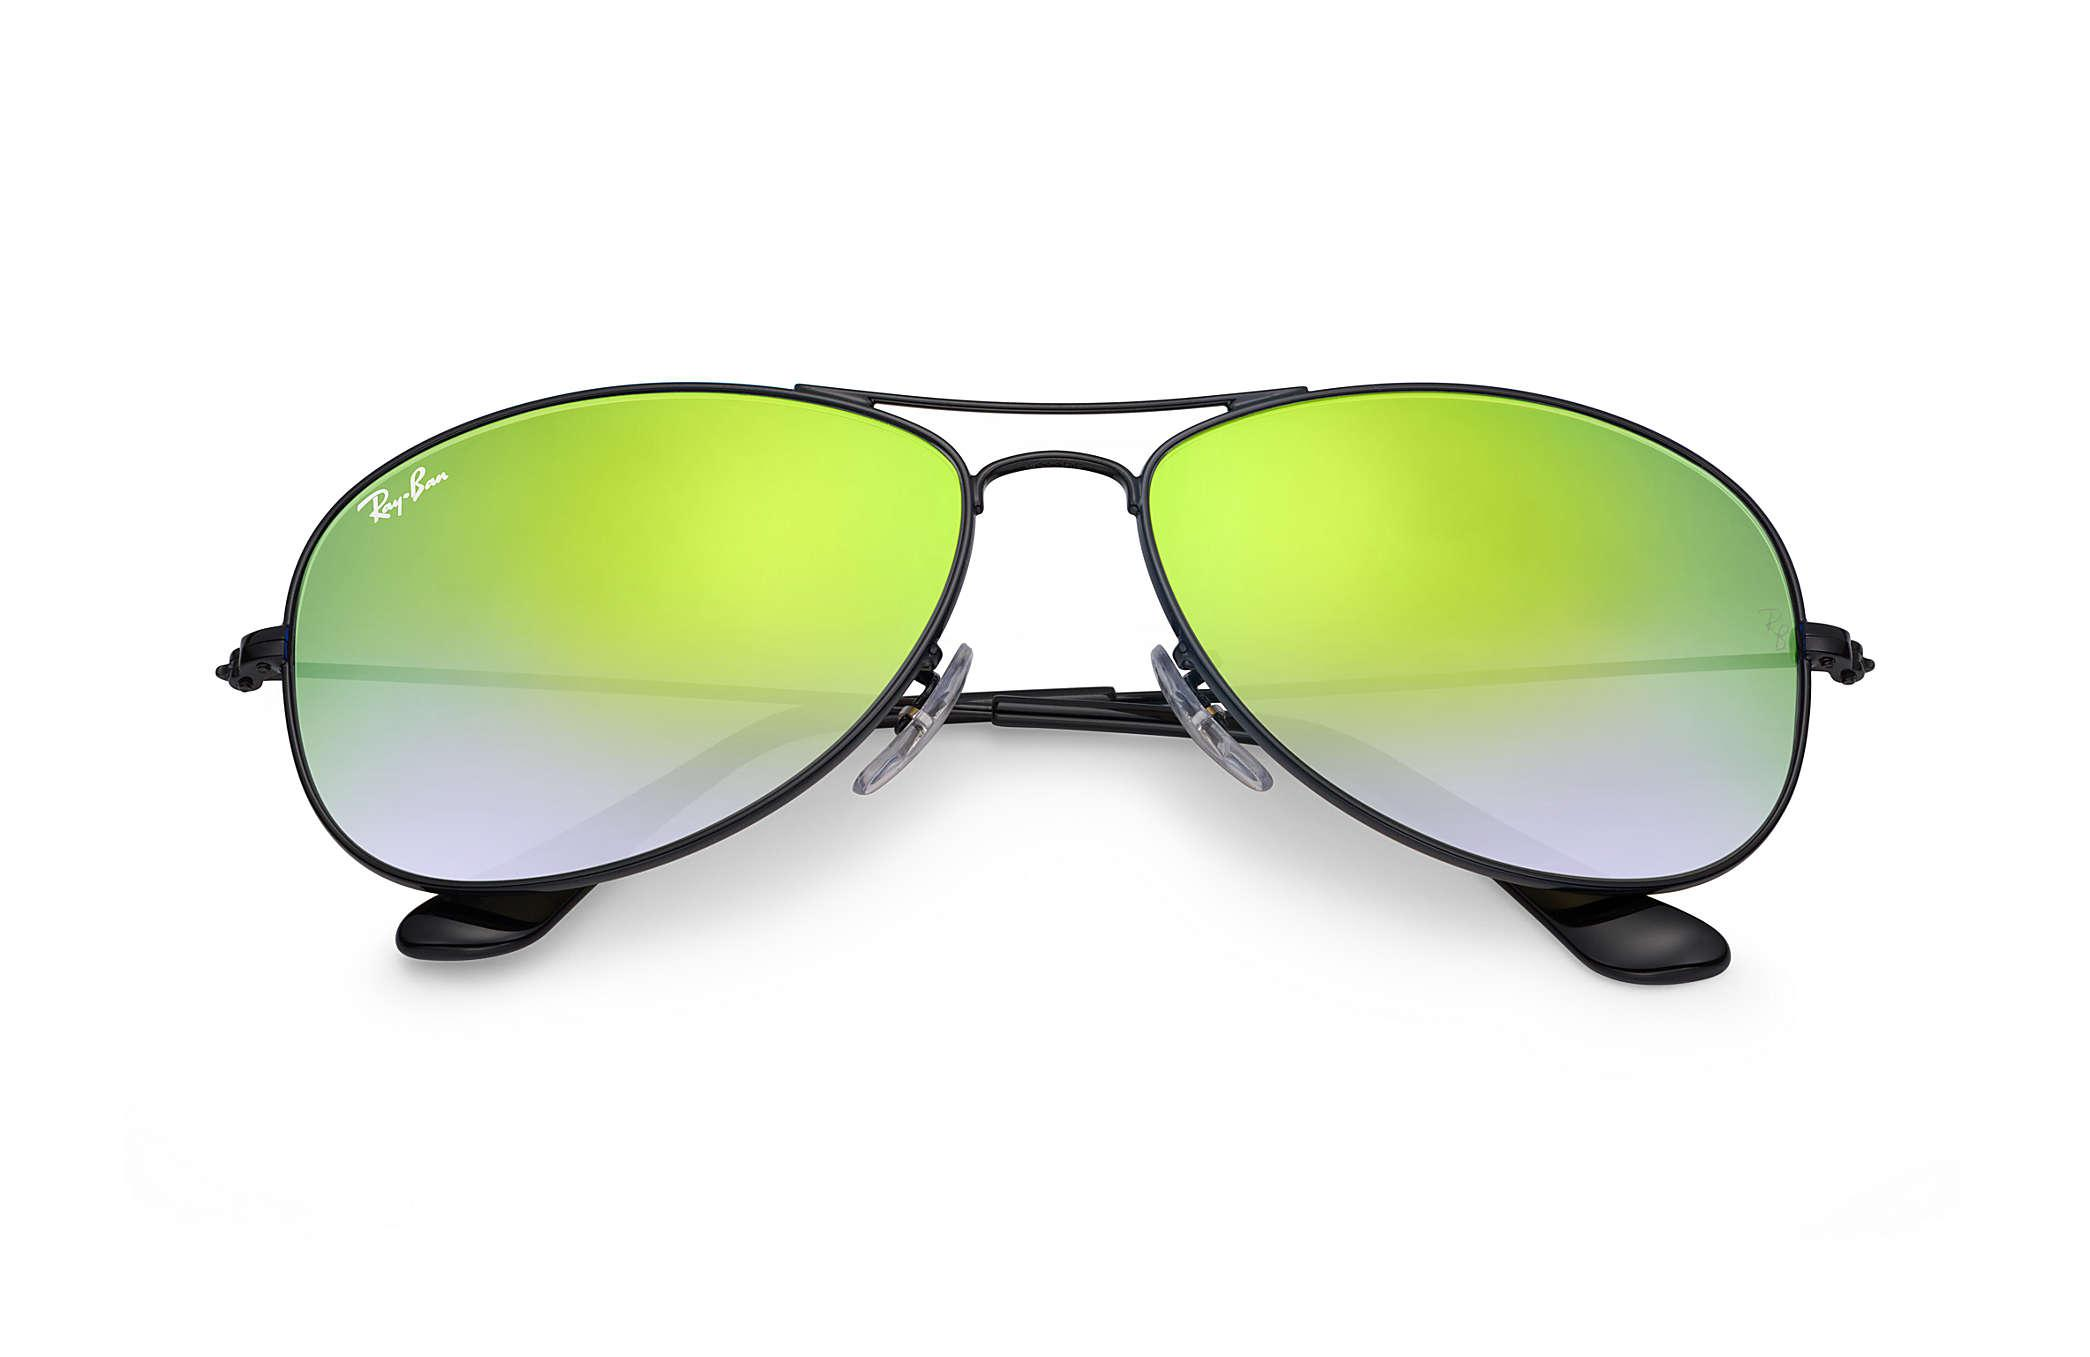 127eee13a2 Ray-Ban - Green Cockpit Flash Lenses Gradient for Men - Lyst. View  fullscreen